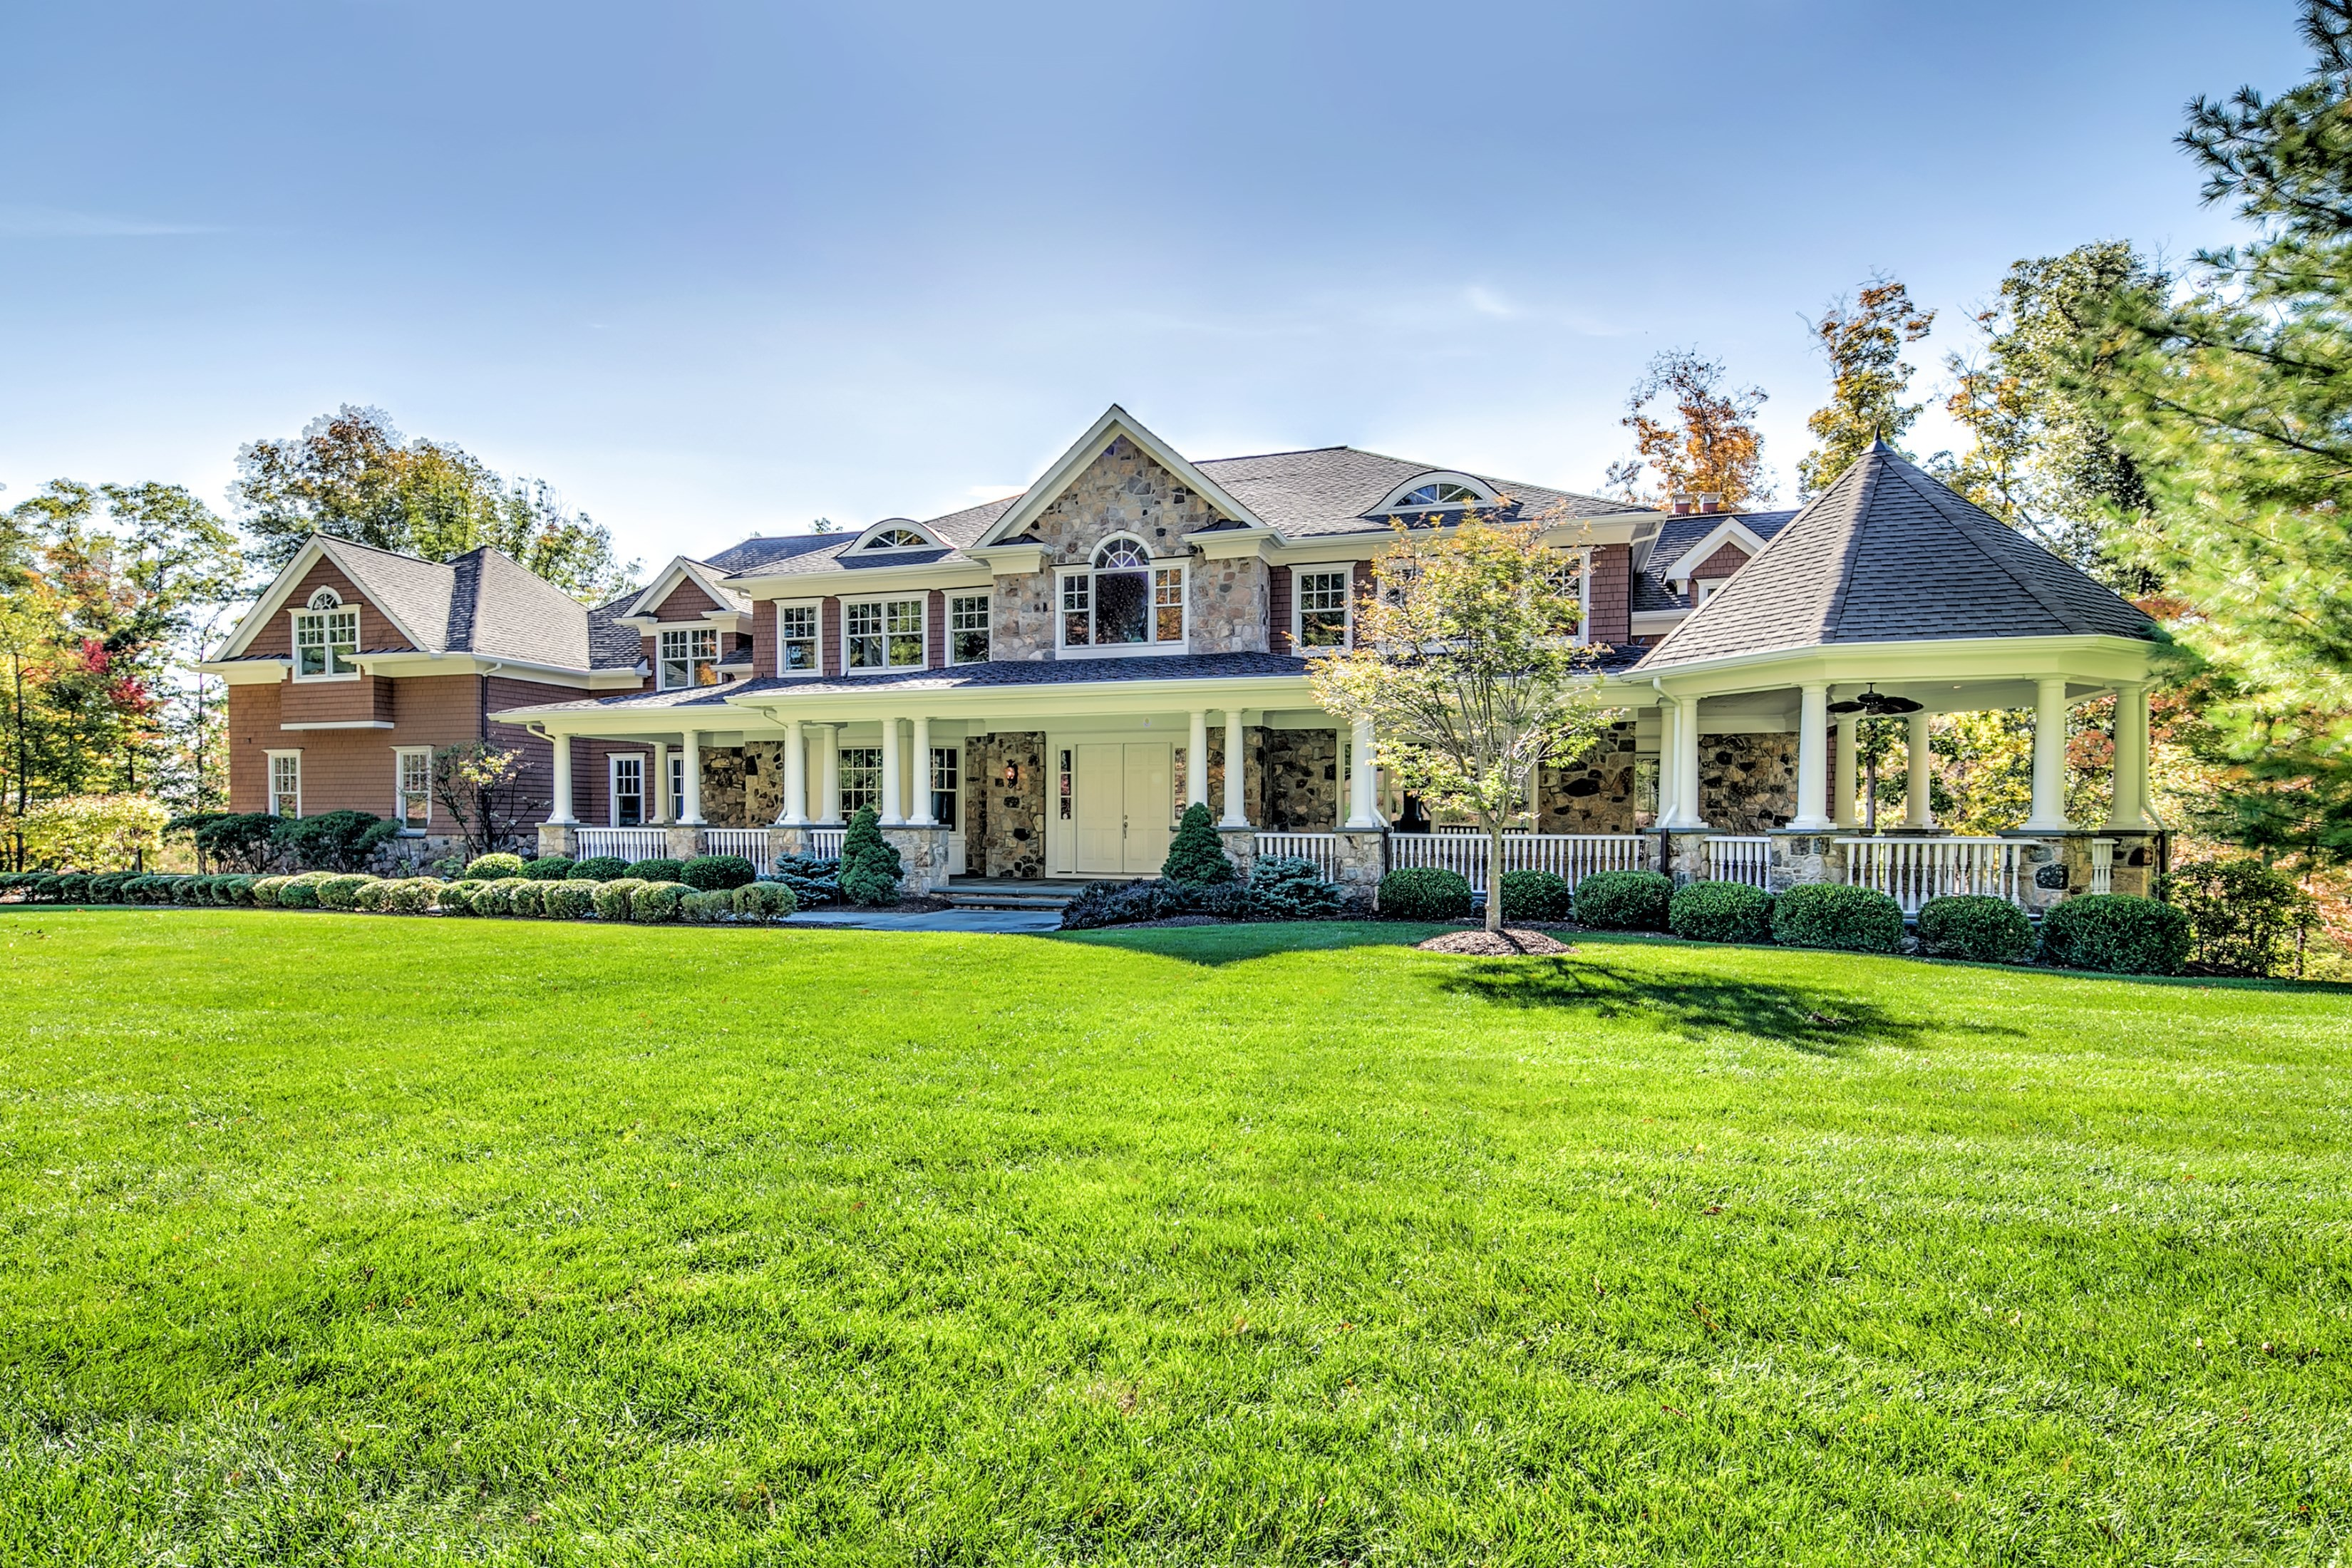 Single Family Home for Sale at Elegant Custom Colonial 49 Wisteria Way Basking Ridge, 07920 United States